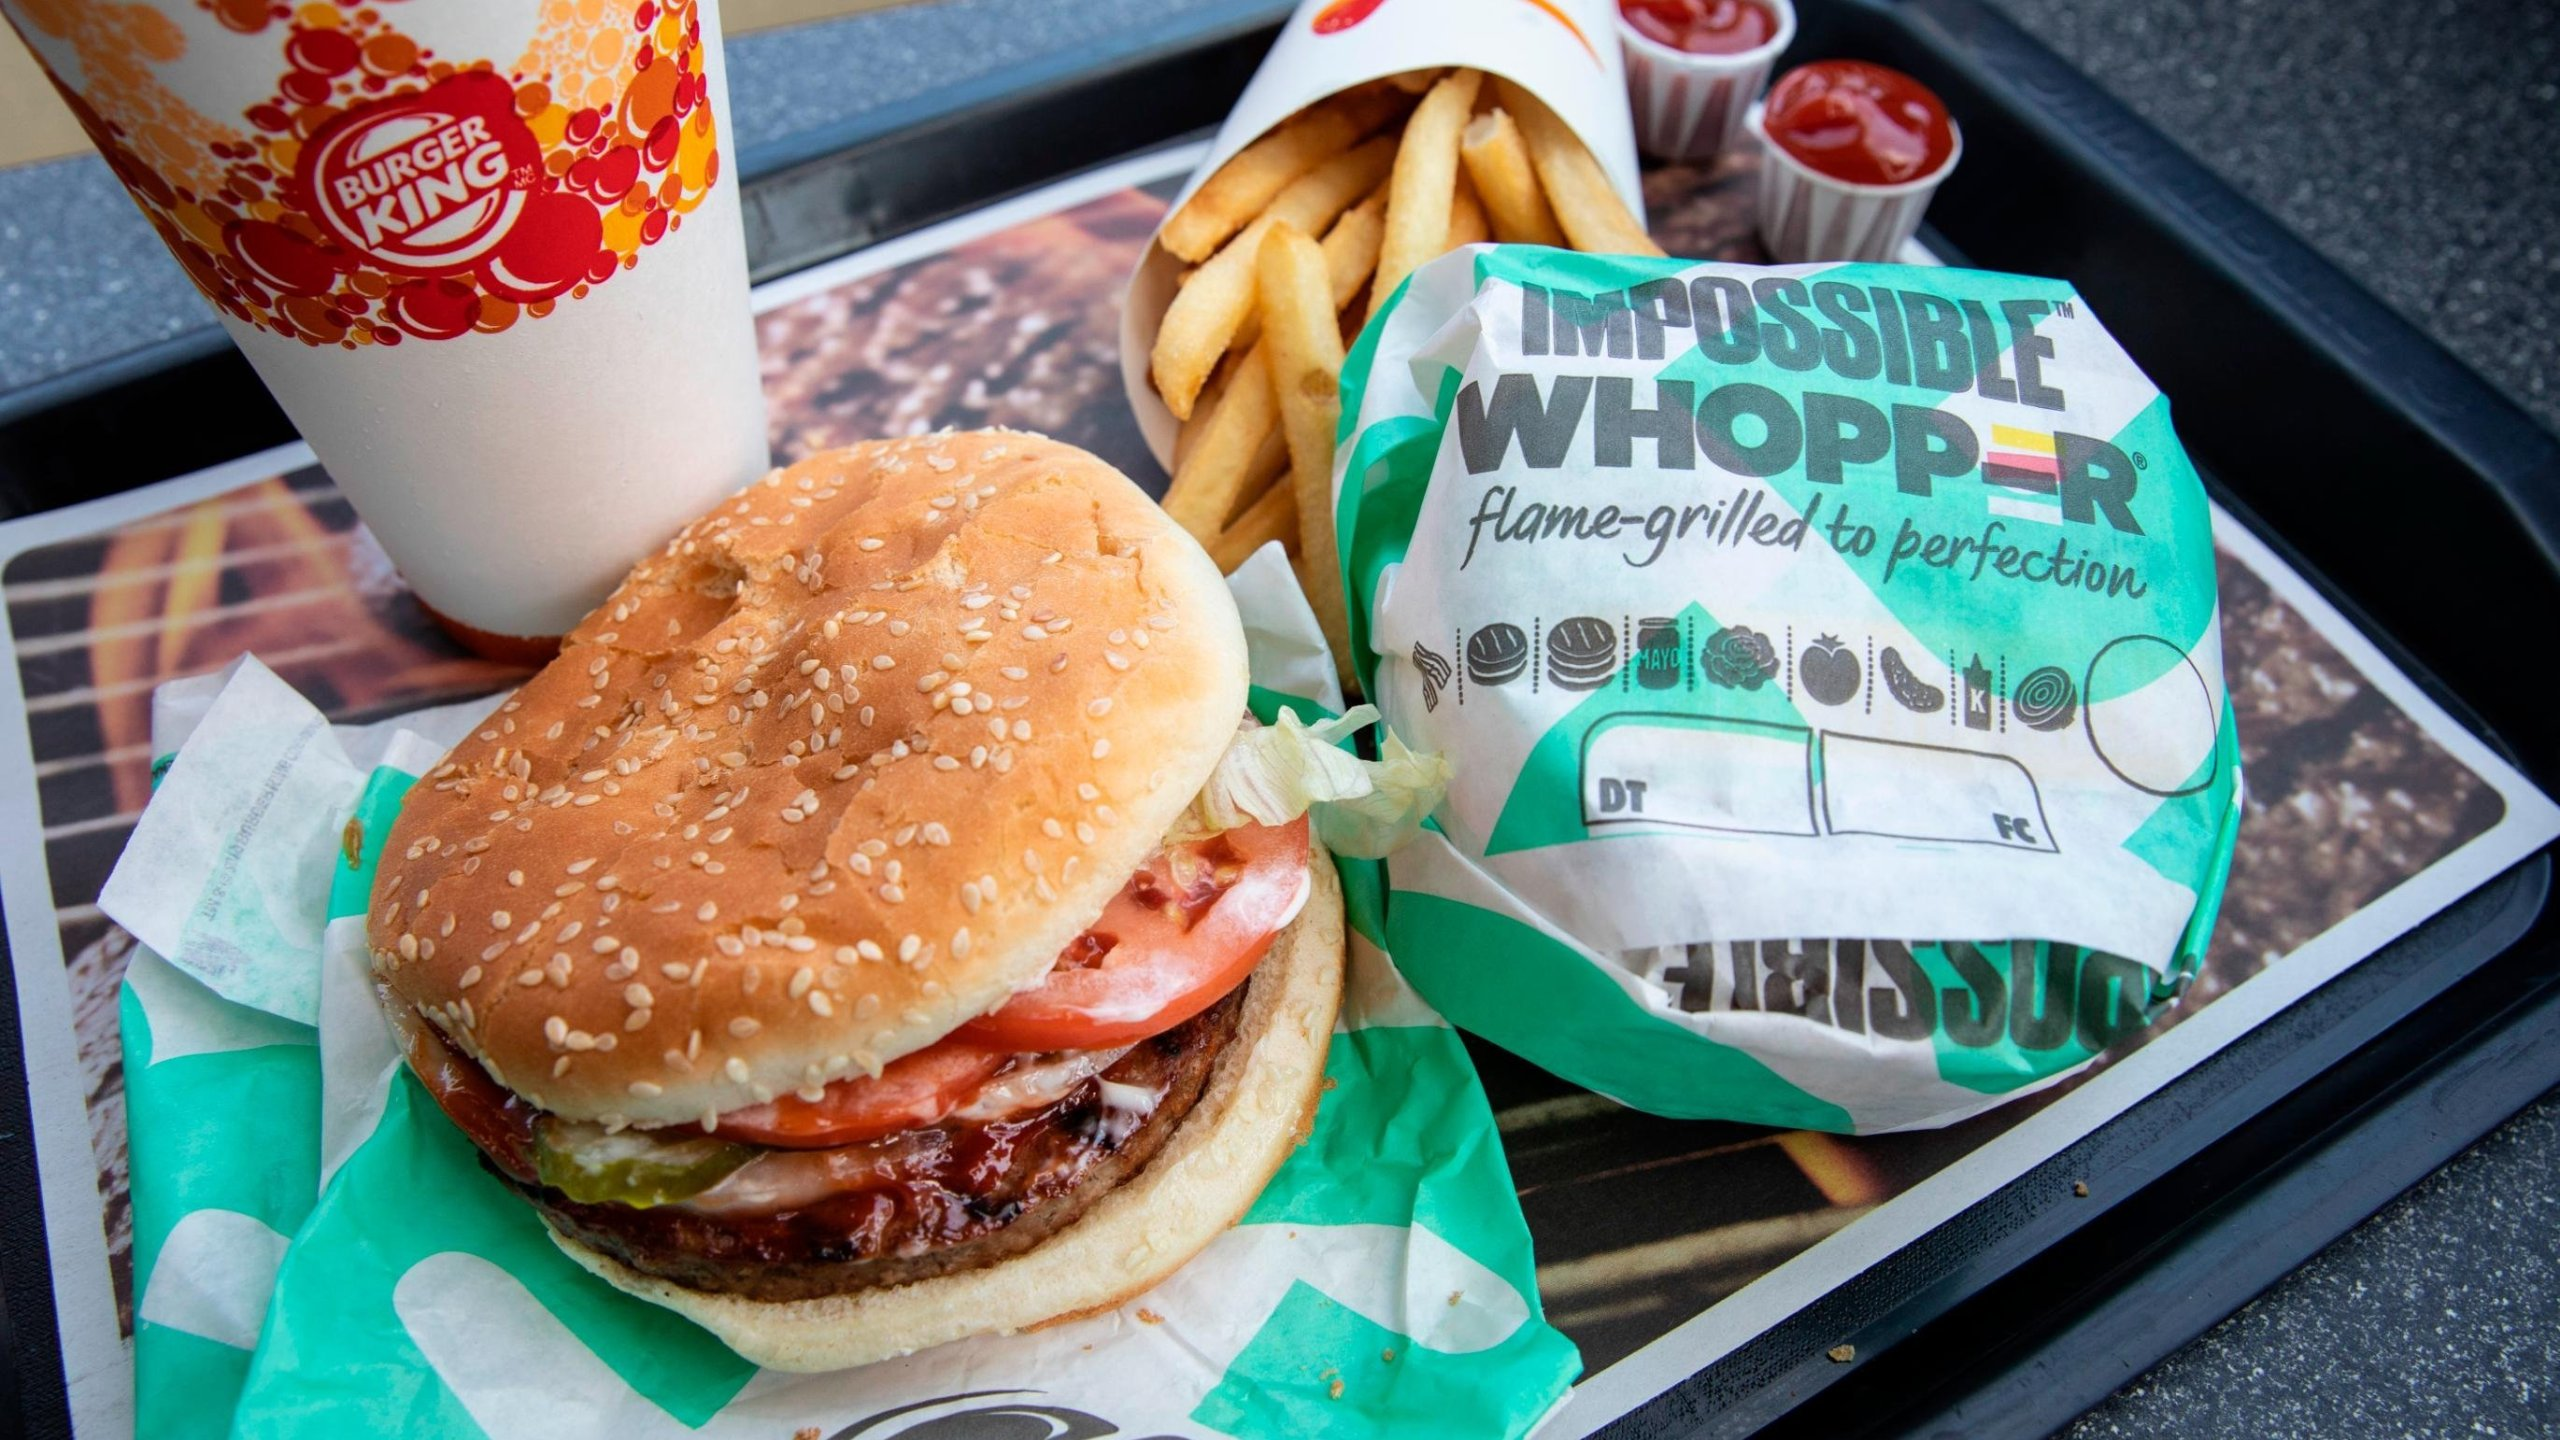 A man is suing Burger King because the meatless Impossible Whopper is cooked on the same grill as meat products, the lawsuit alleges. (Credit: Drew Angerer/Getty Images)